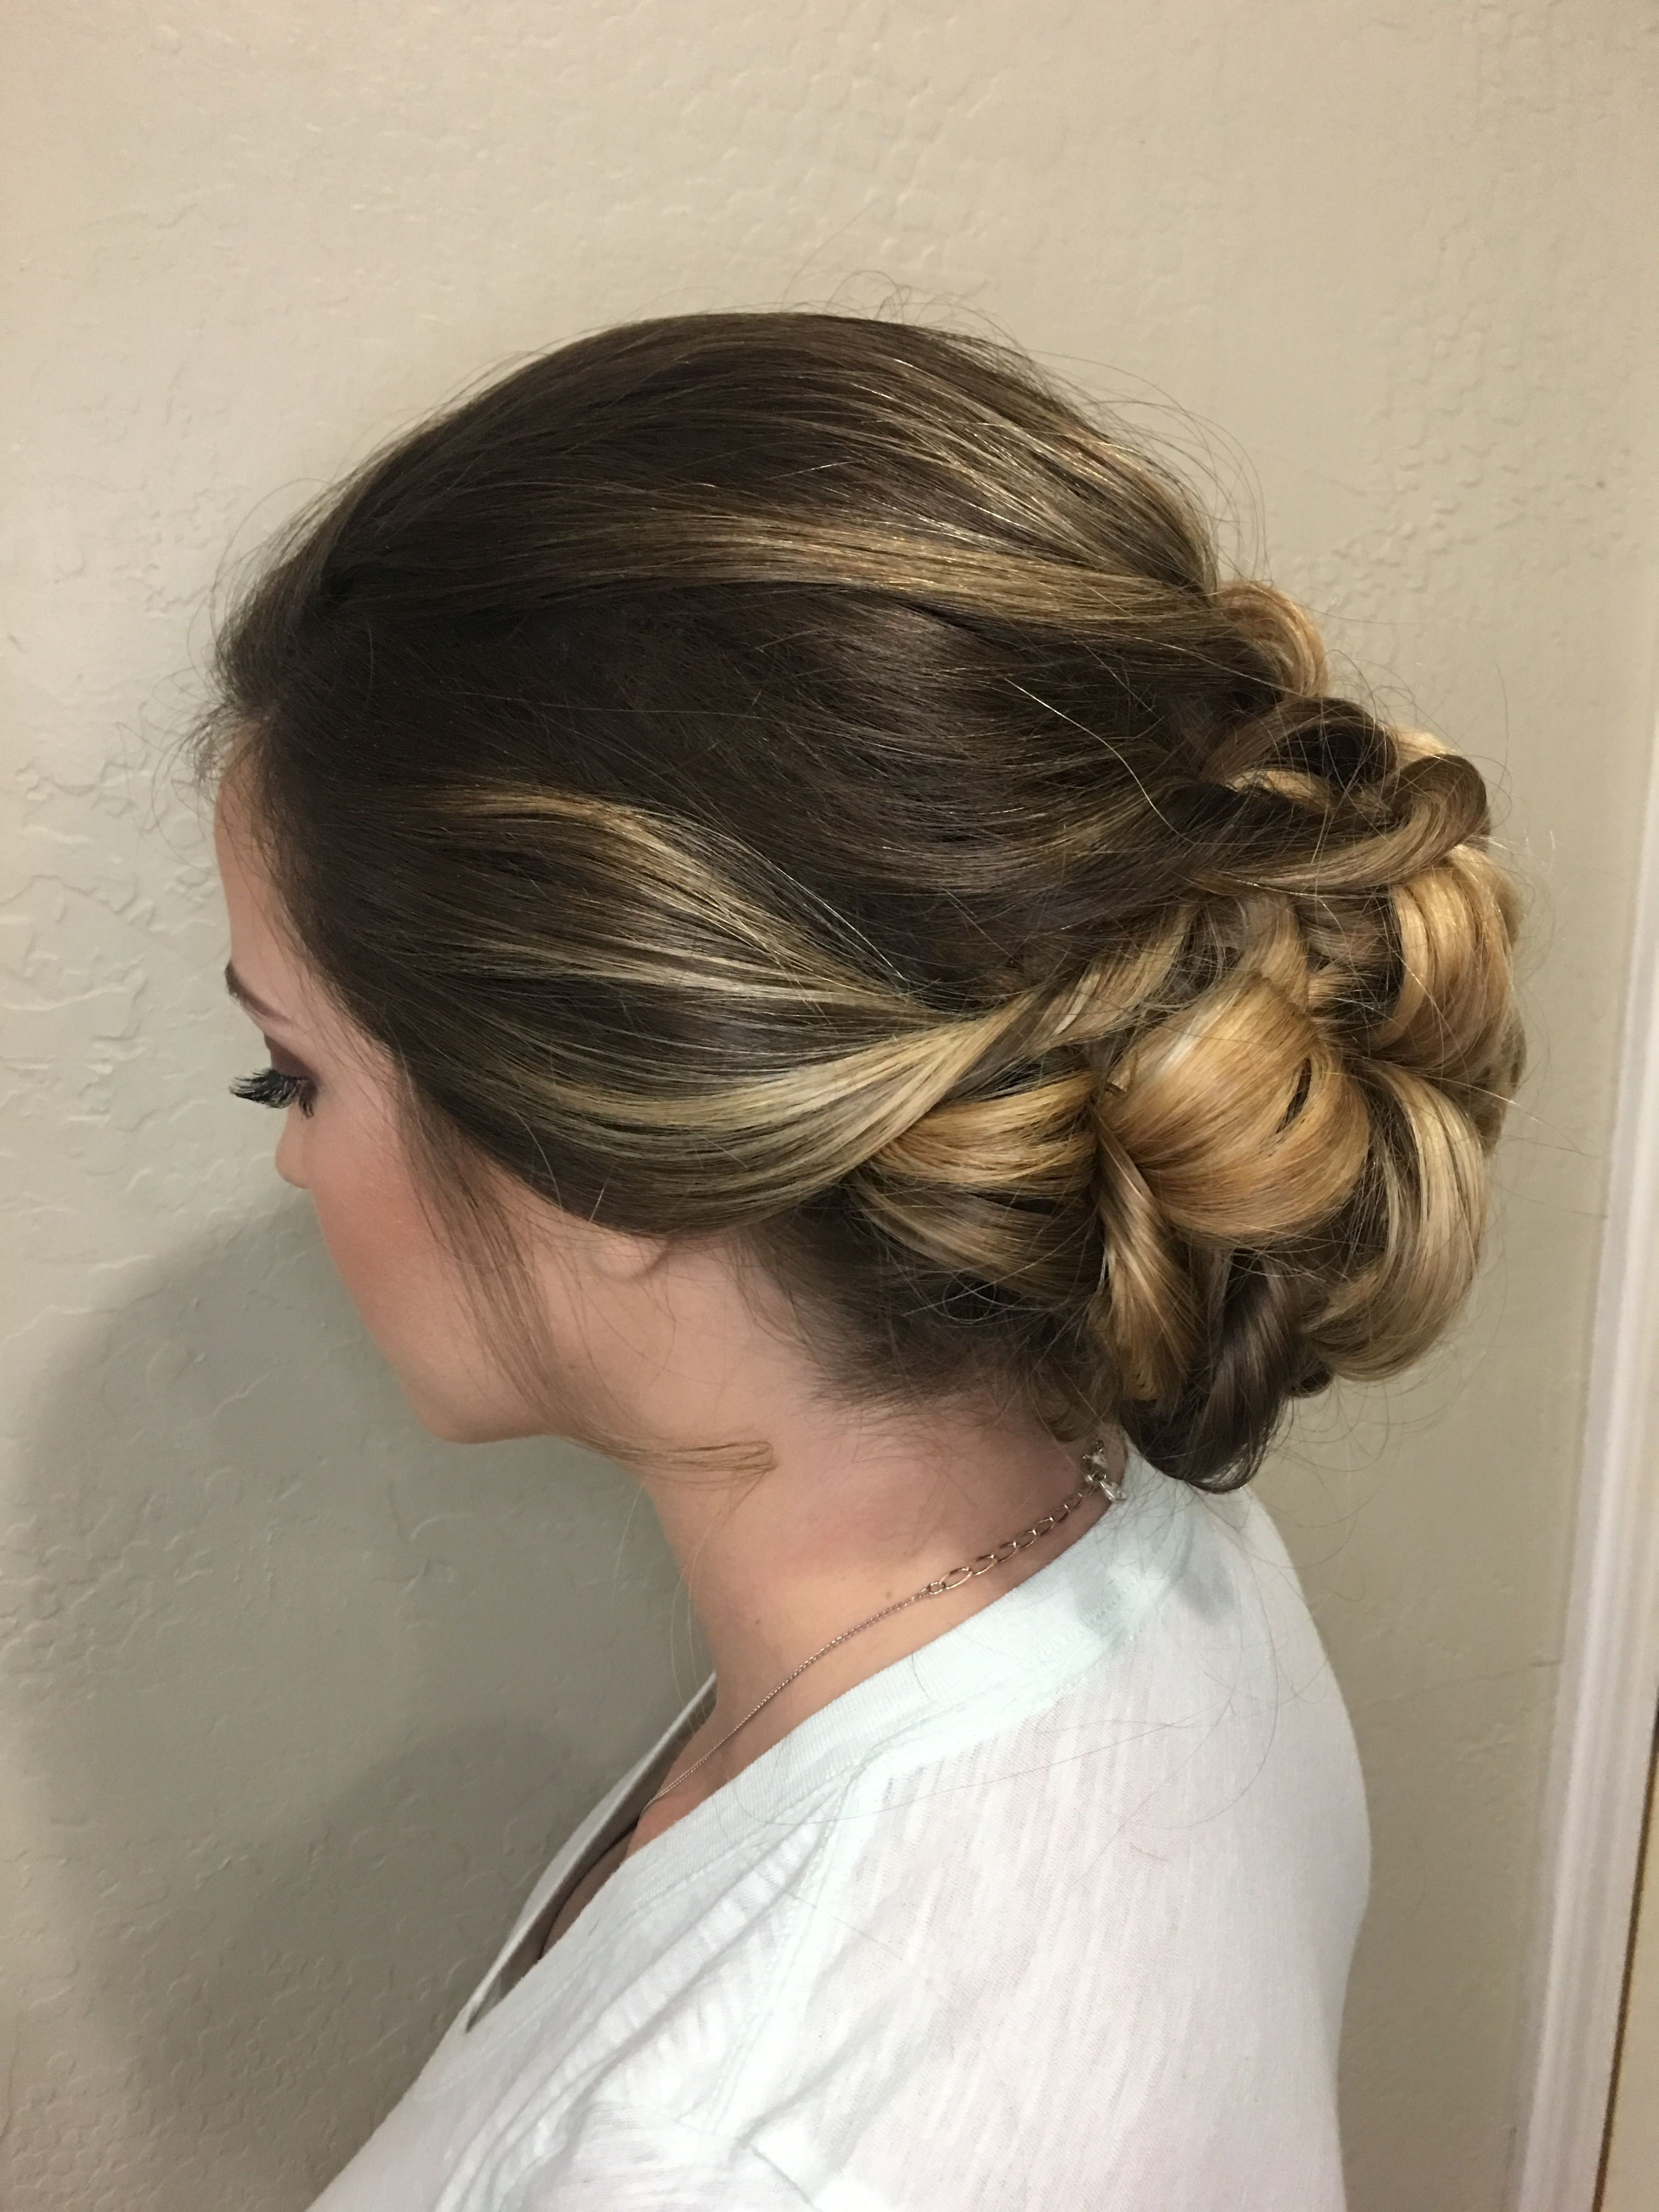 Updo, bridal hairstyle, wedding hair, bridesmaids hair, low bun ...